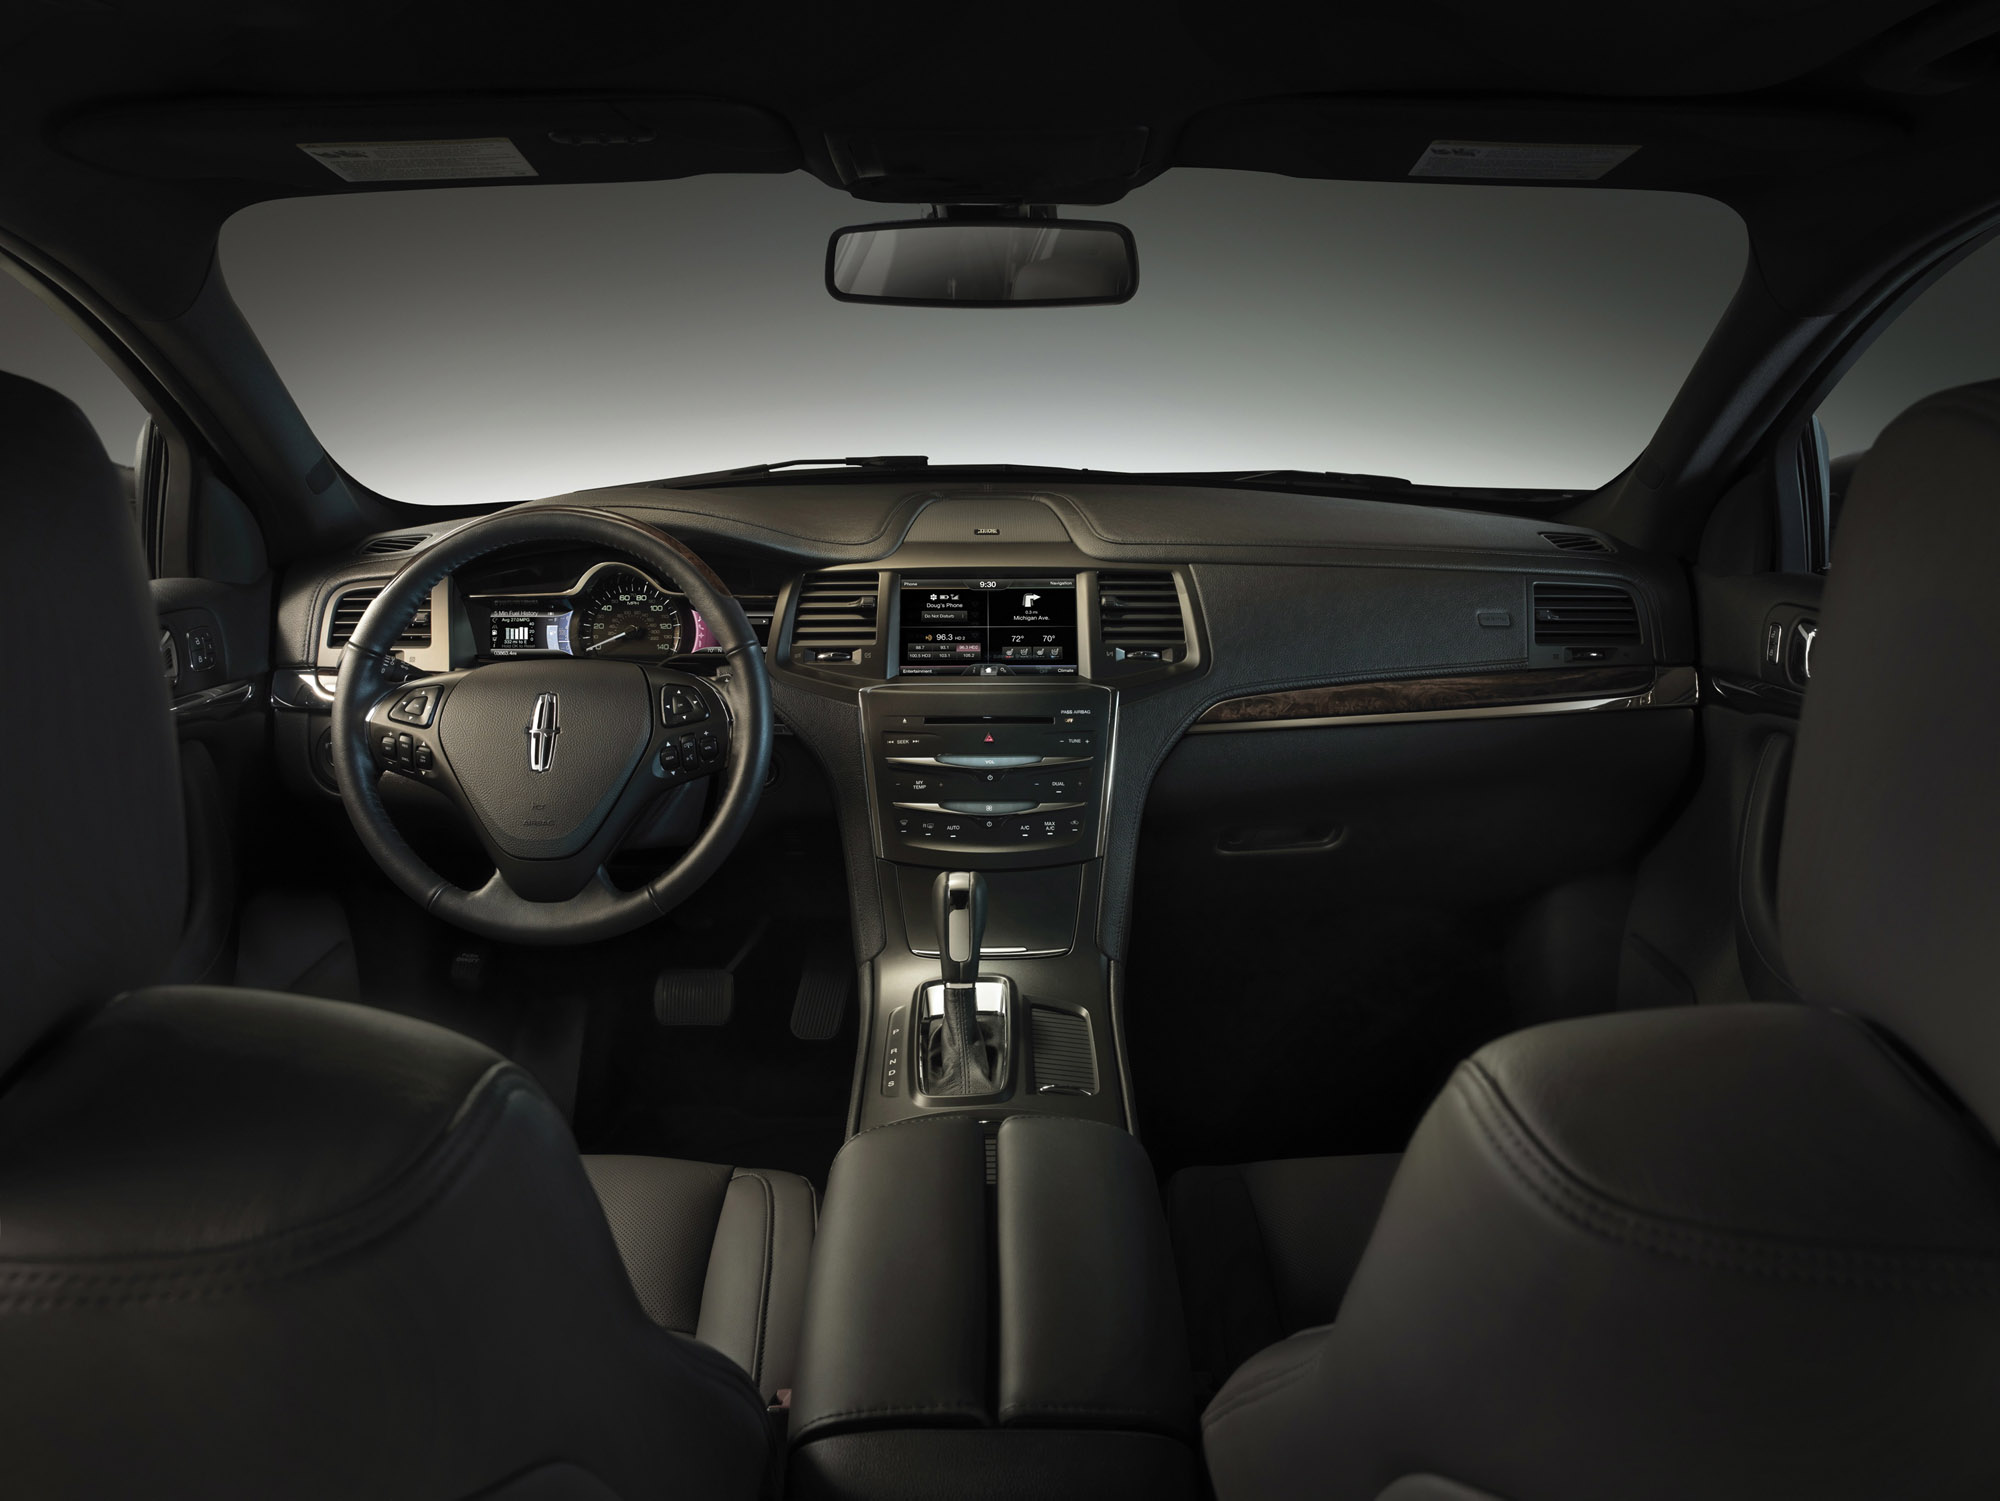 2013 Lincoln MKS Interior 4 at Lincoln History and Photo Gallery